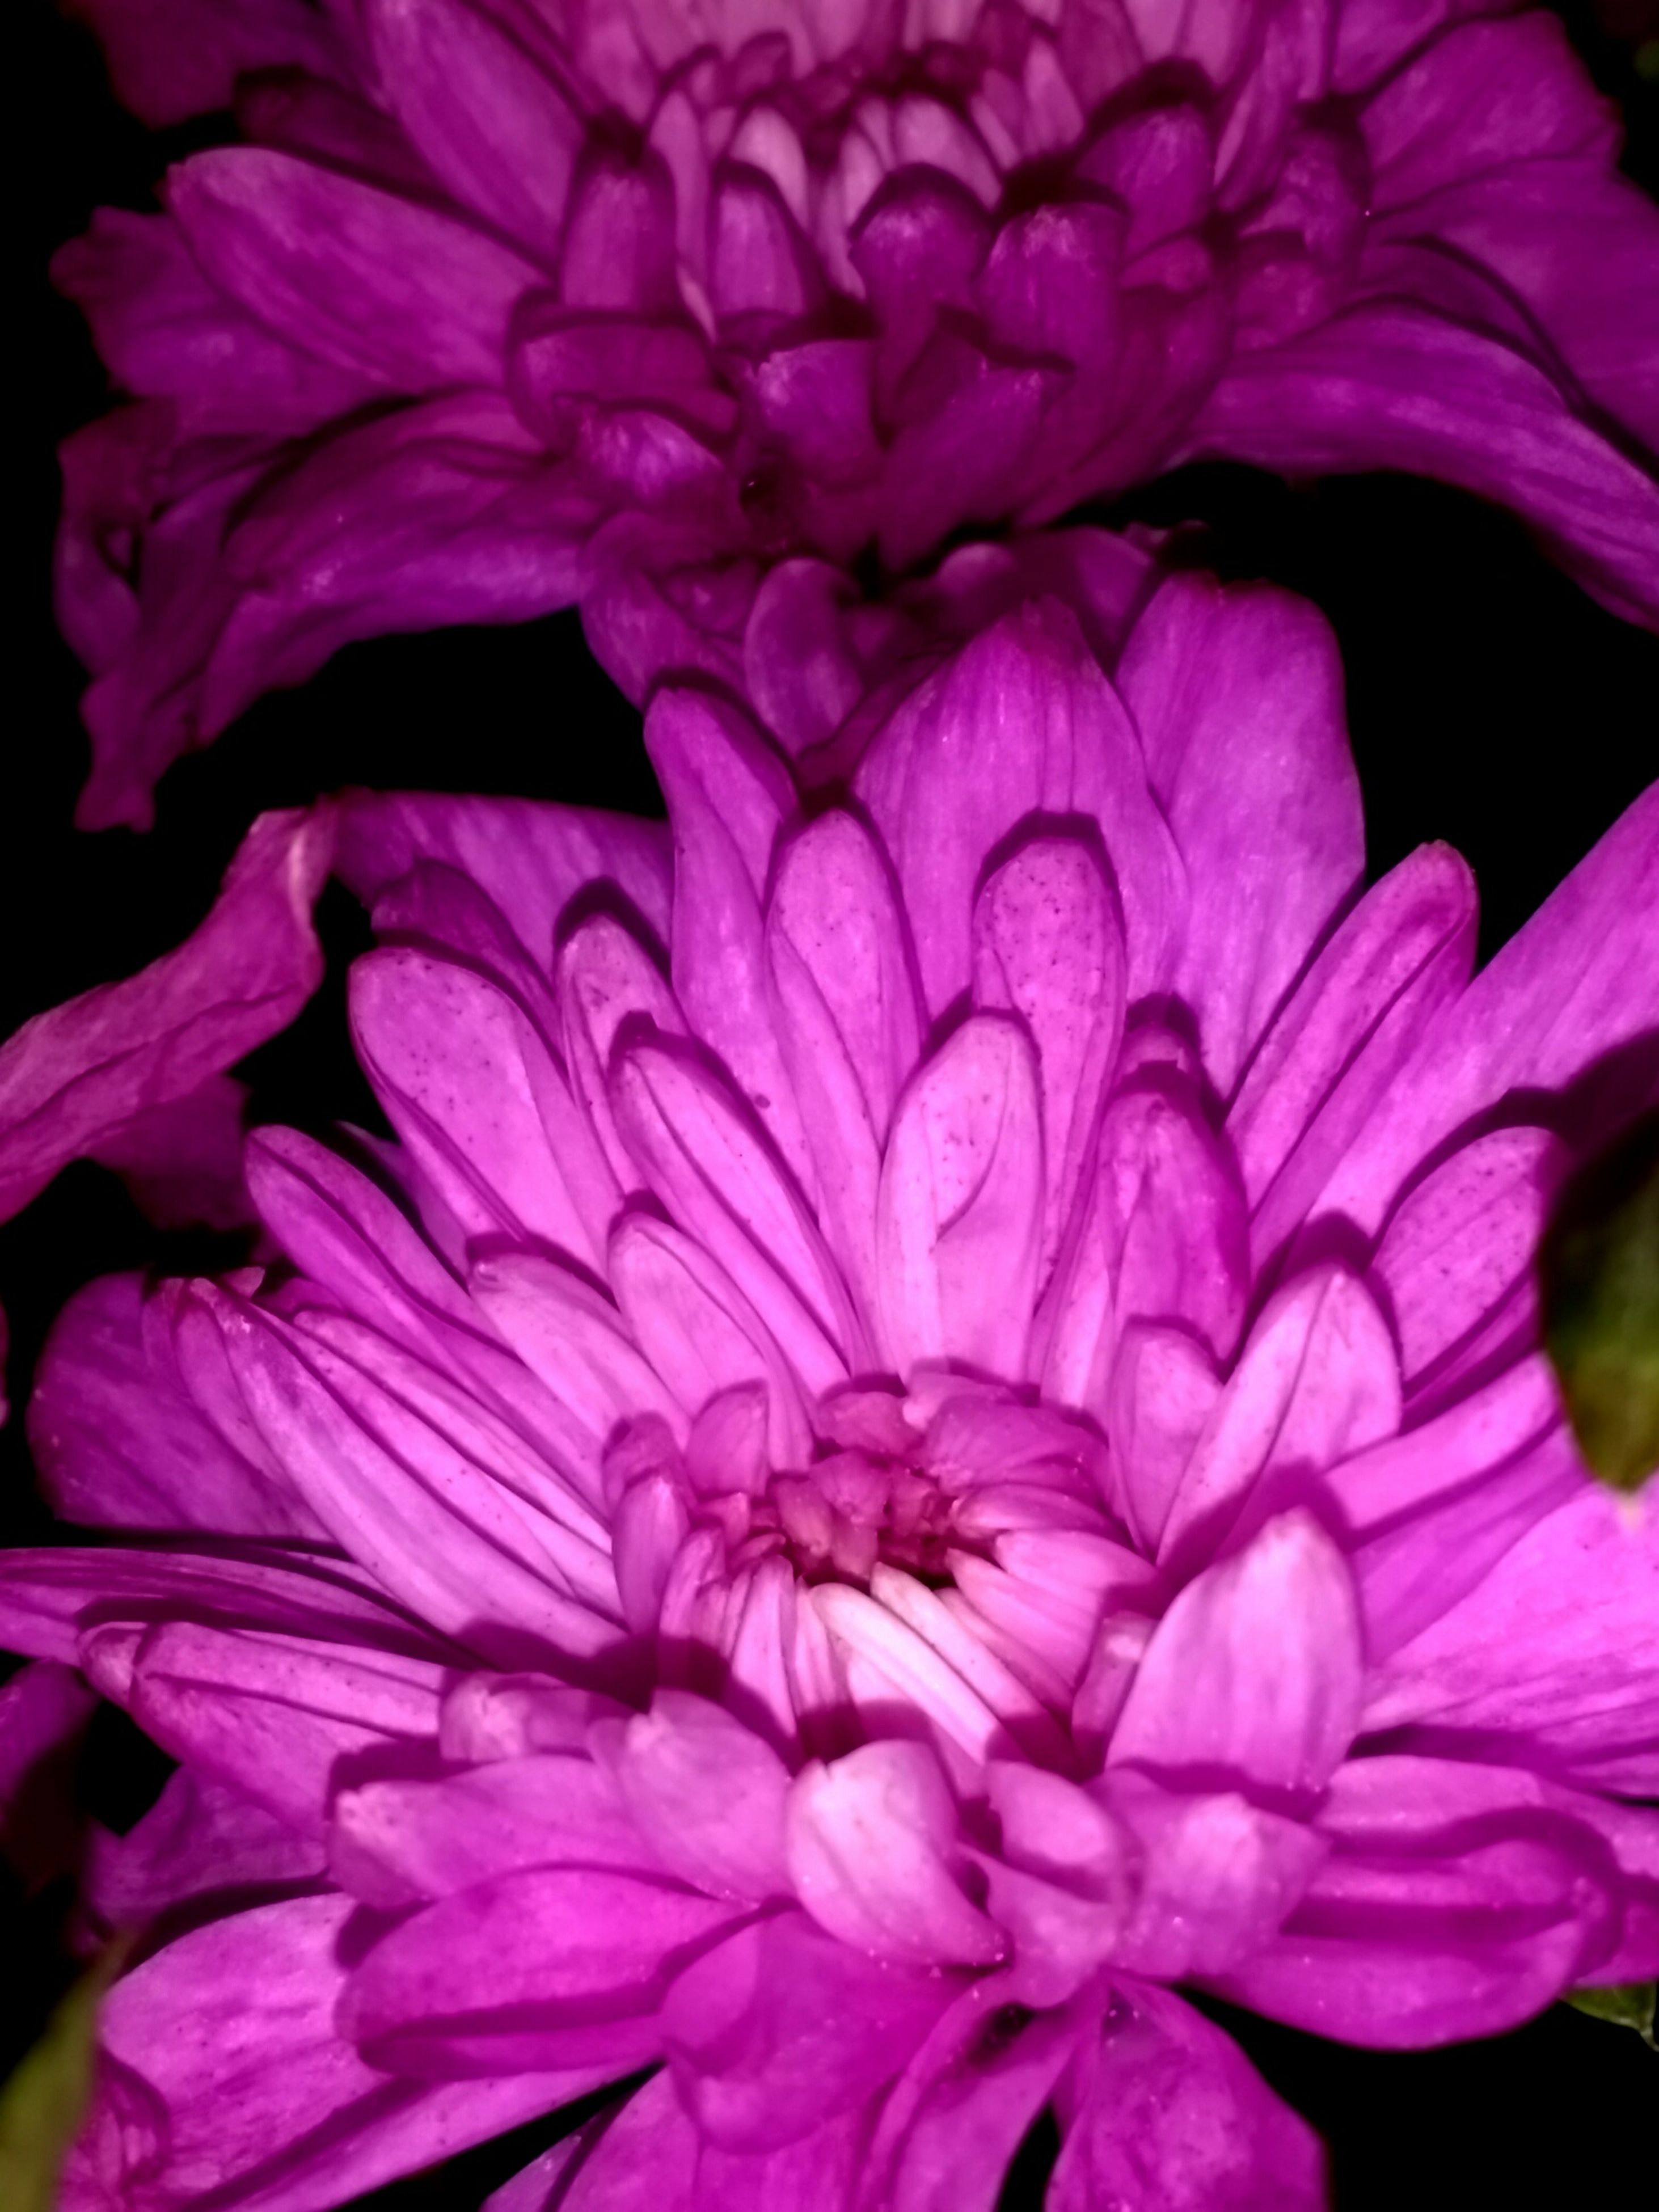 flower, beauty in nature, flower head, fragility, petal, close-up, nature, freshness, pink color, no people, growth, plant, blooming, outdoors, day, chrysanthemum, backgrounds